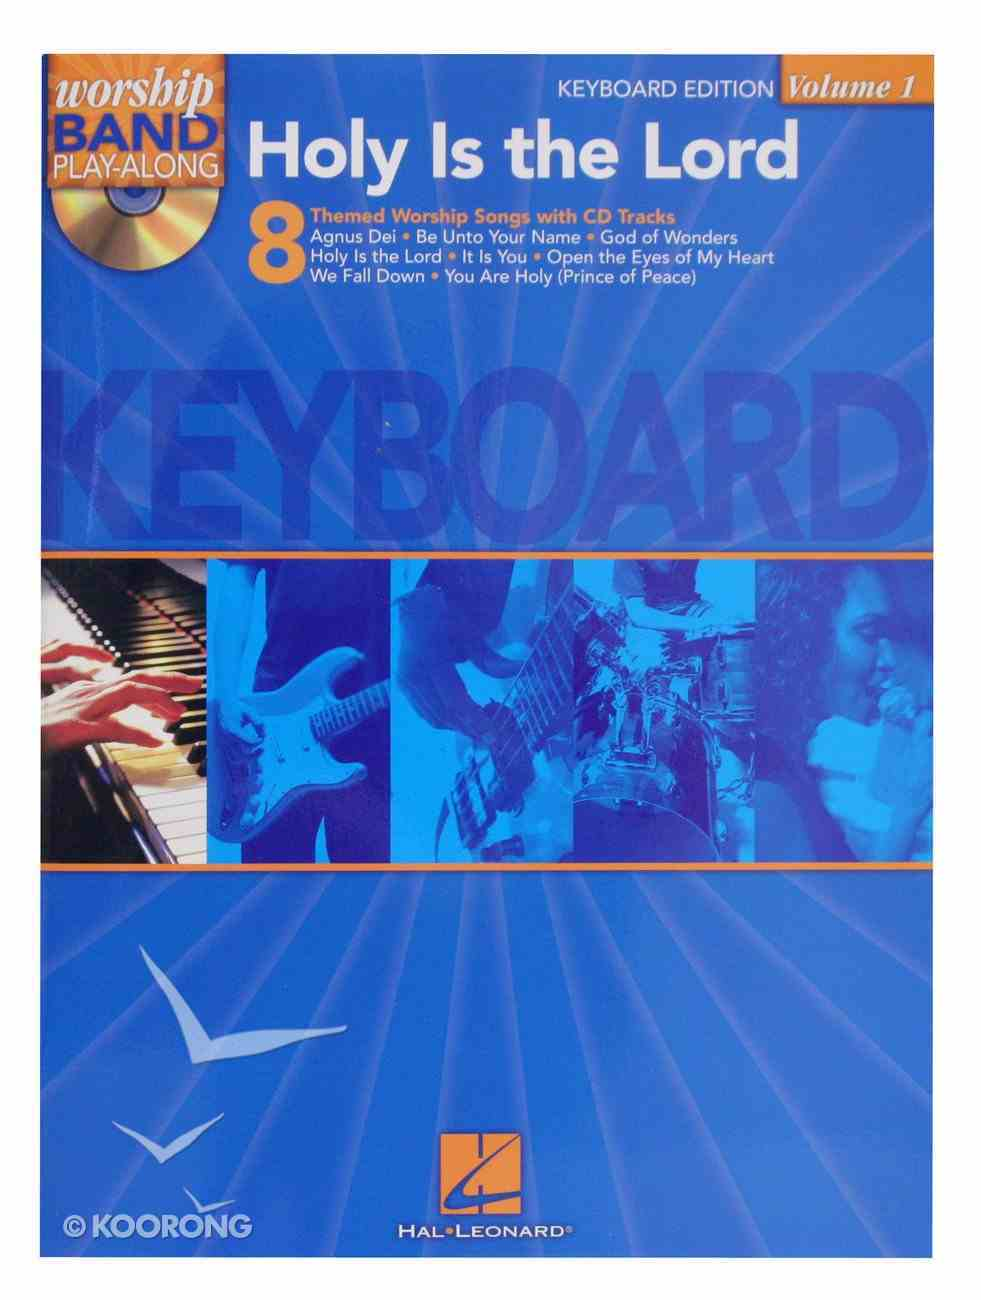 Holy is the Lord: Keyboard Edition Music Book Paperback